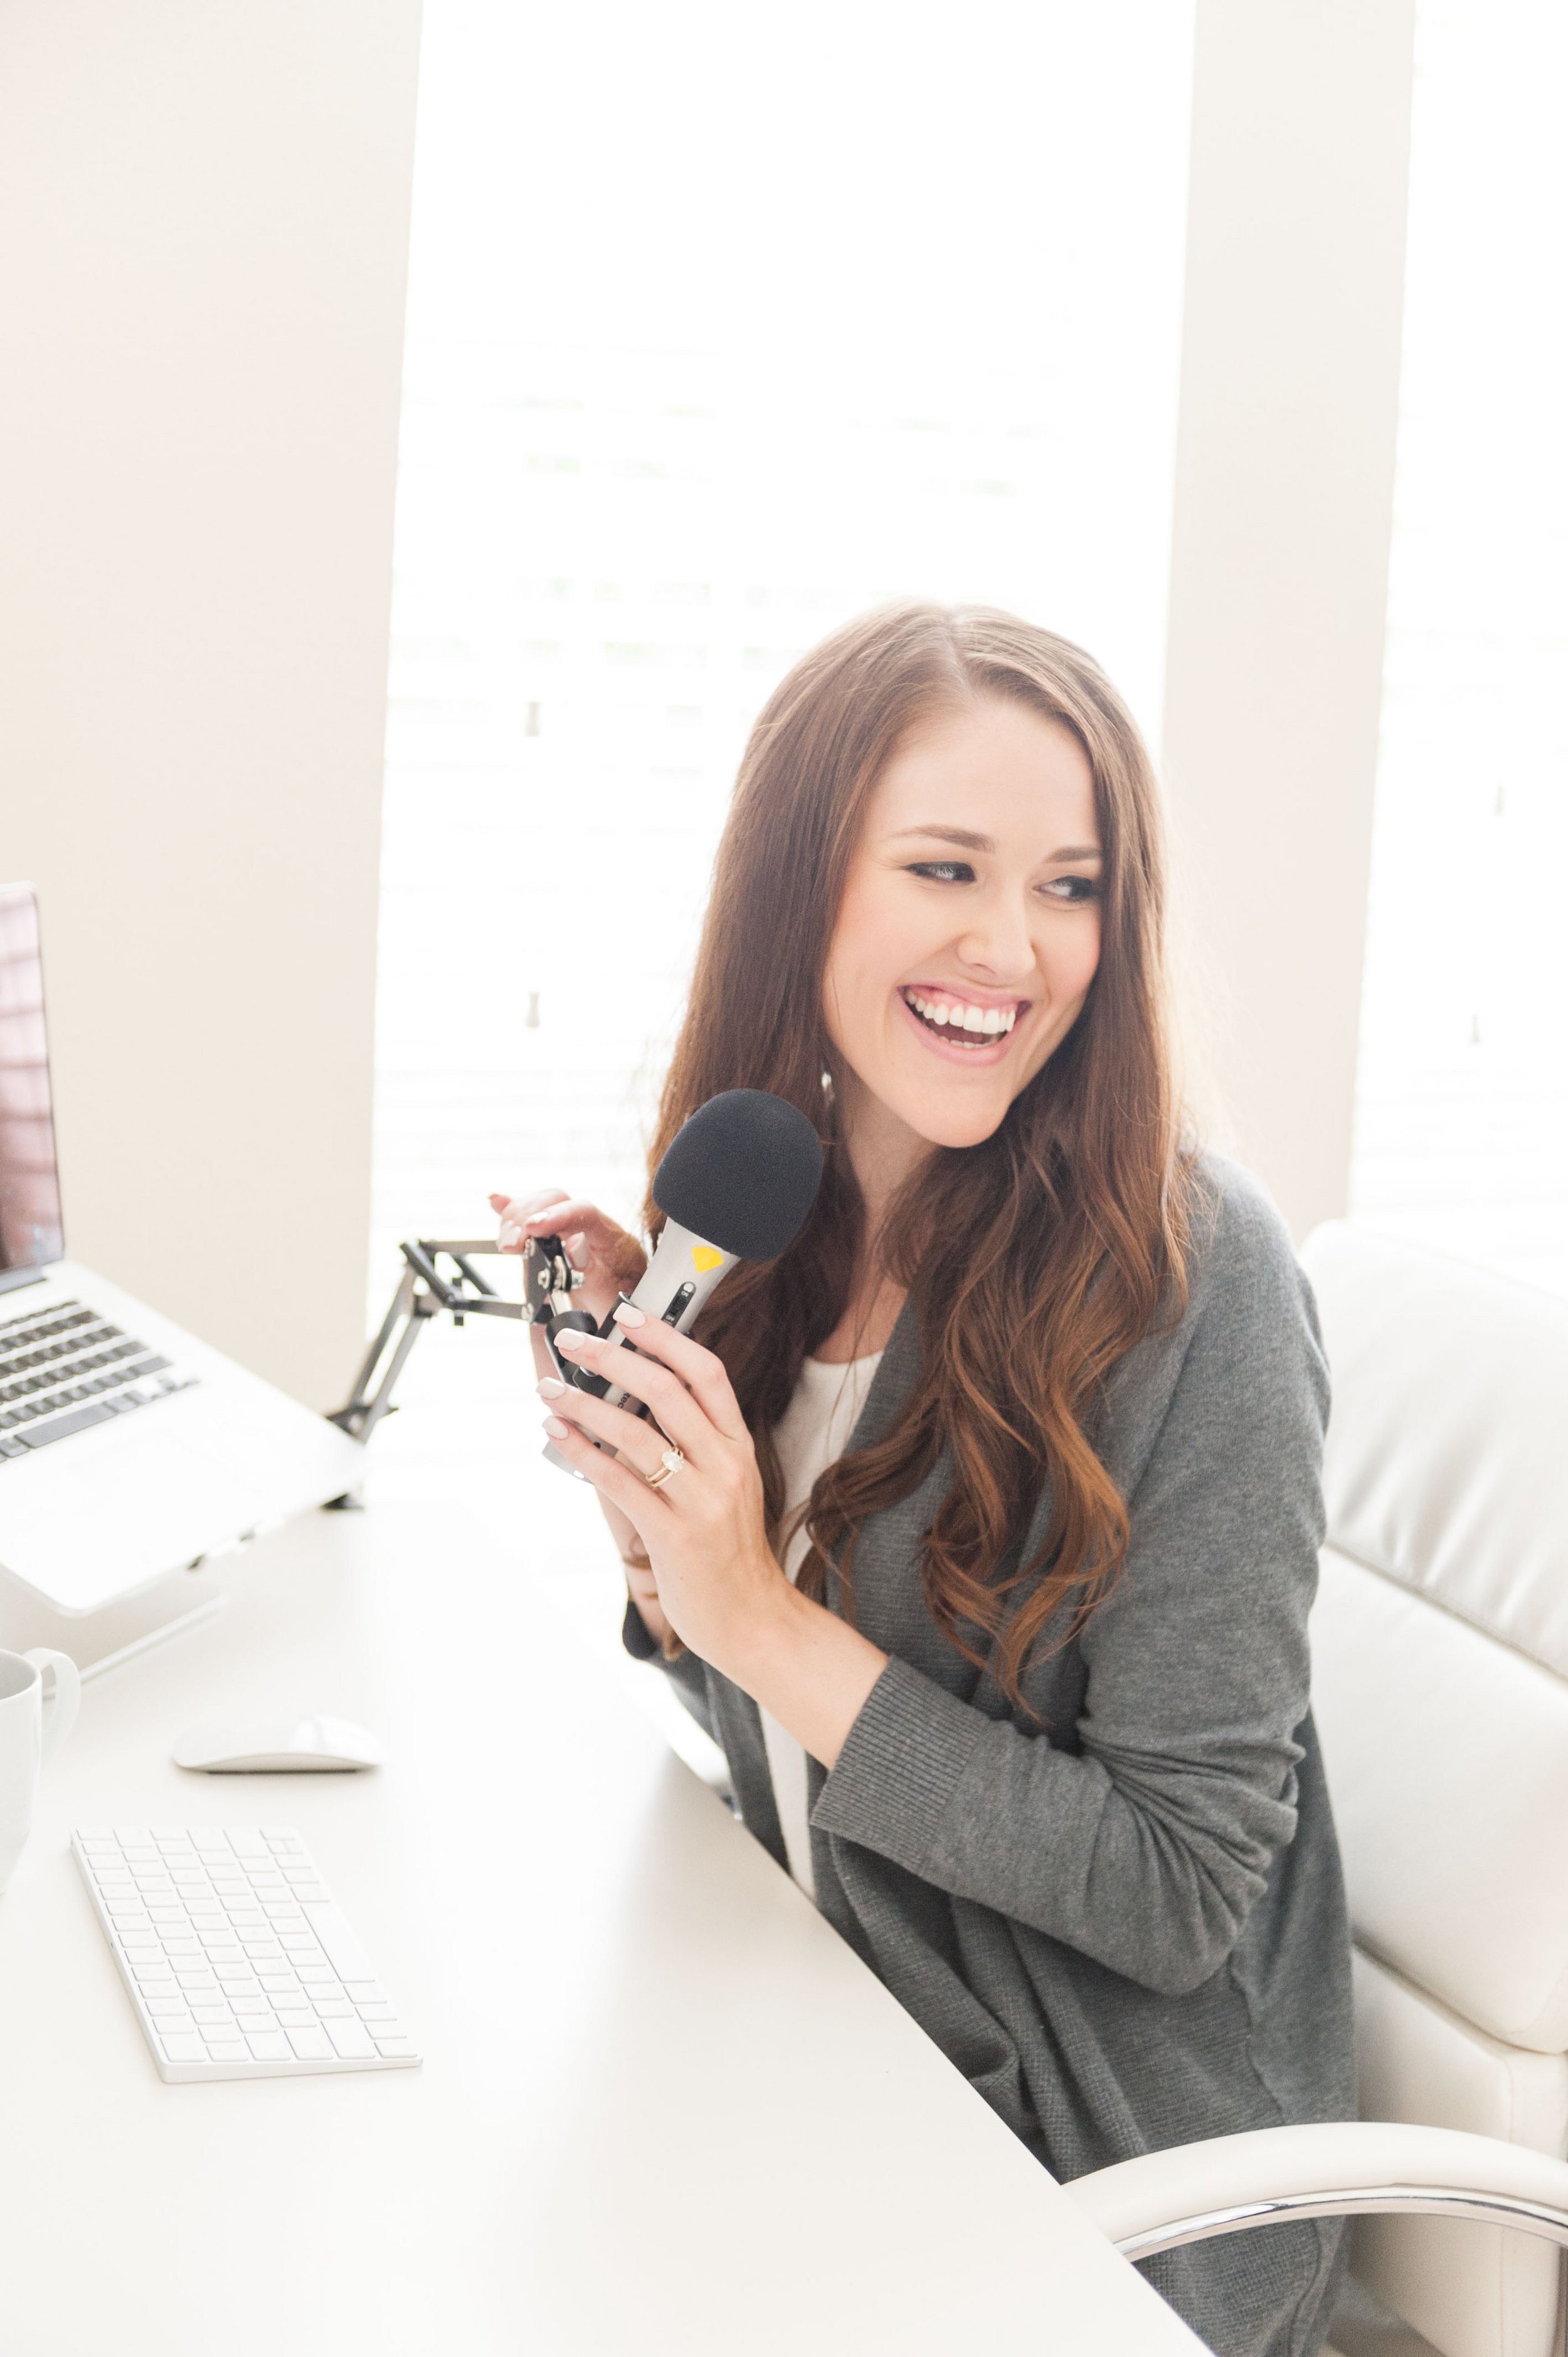 How I Launched my Podcast in 23 Days - Megan Minns